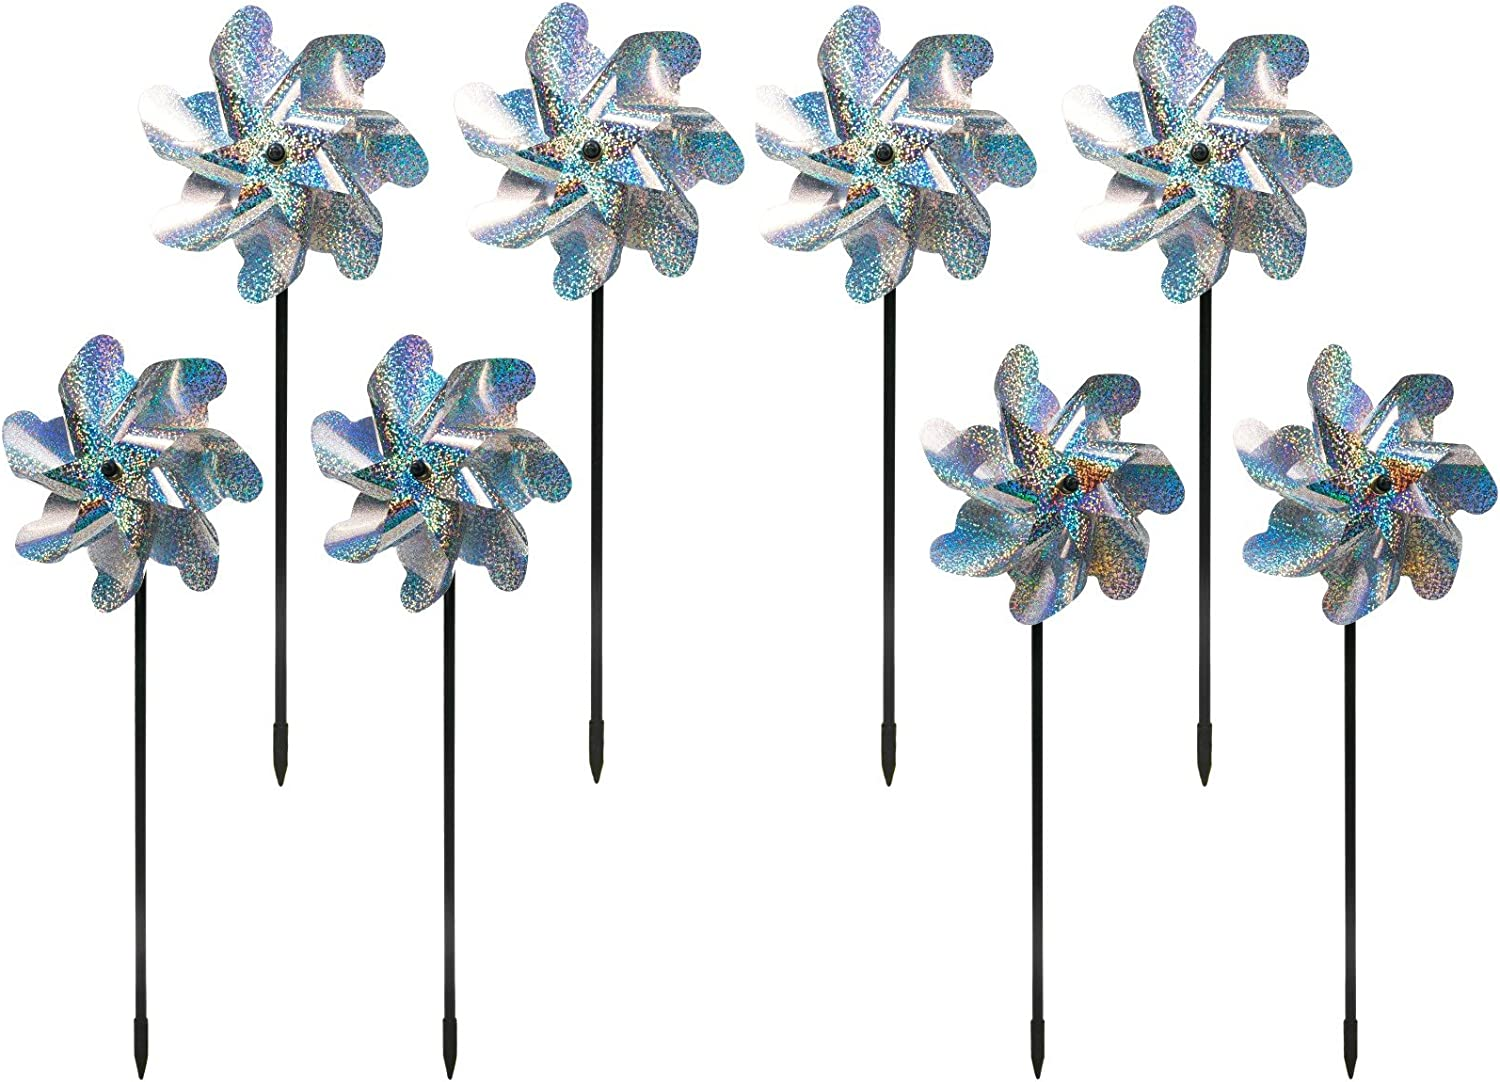 BIRD BLINDER Premium Repellent PinWheels Deluxe Holograp – Sparkly Recommended